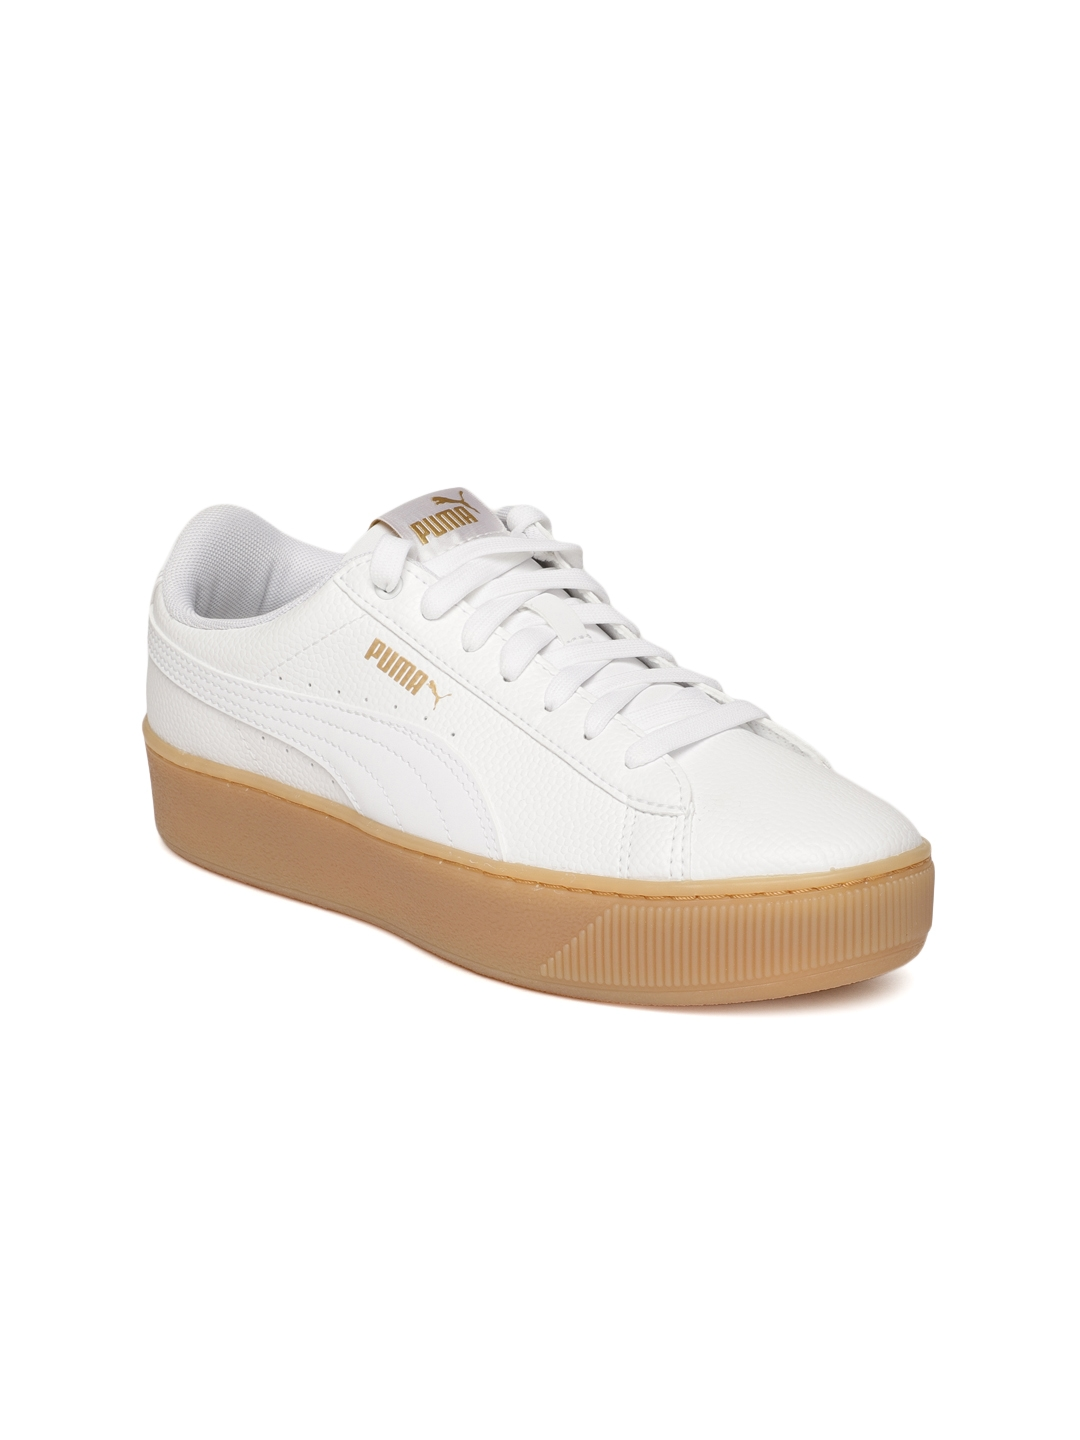 47f2503ecc1511 Buy Puma Women White Vikky Platform VT Sneakers - Casual Shoes for ...